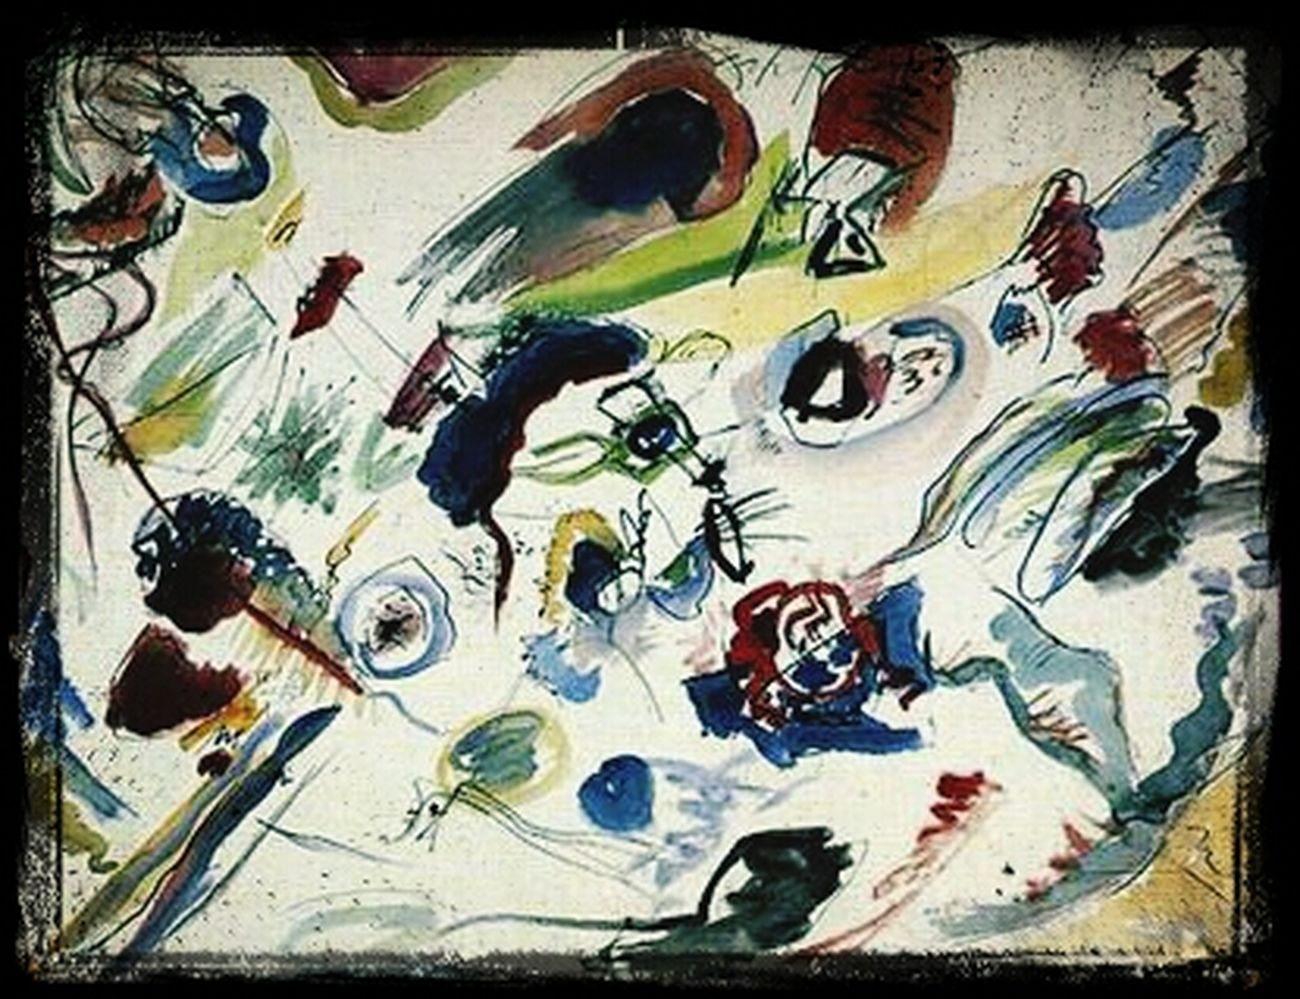 Virtual Web Museum Of Contemporary Art Abstract Historical Avantgarde Art Work Avanguardie Storiche Wassily Kandinsky Arte Astratta Astrattismo Abstract Art Abstractart